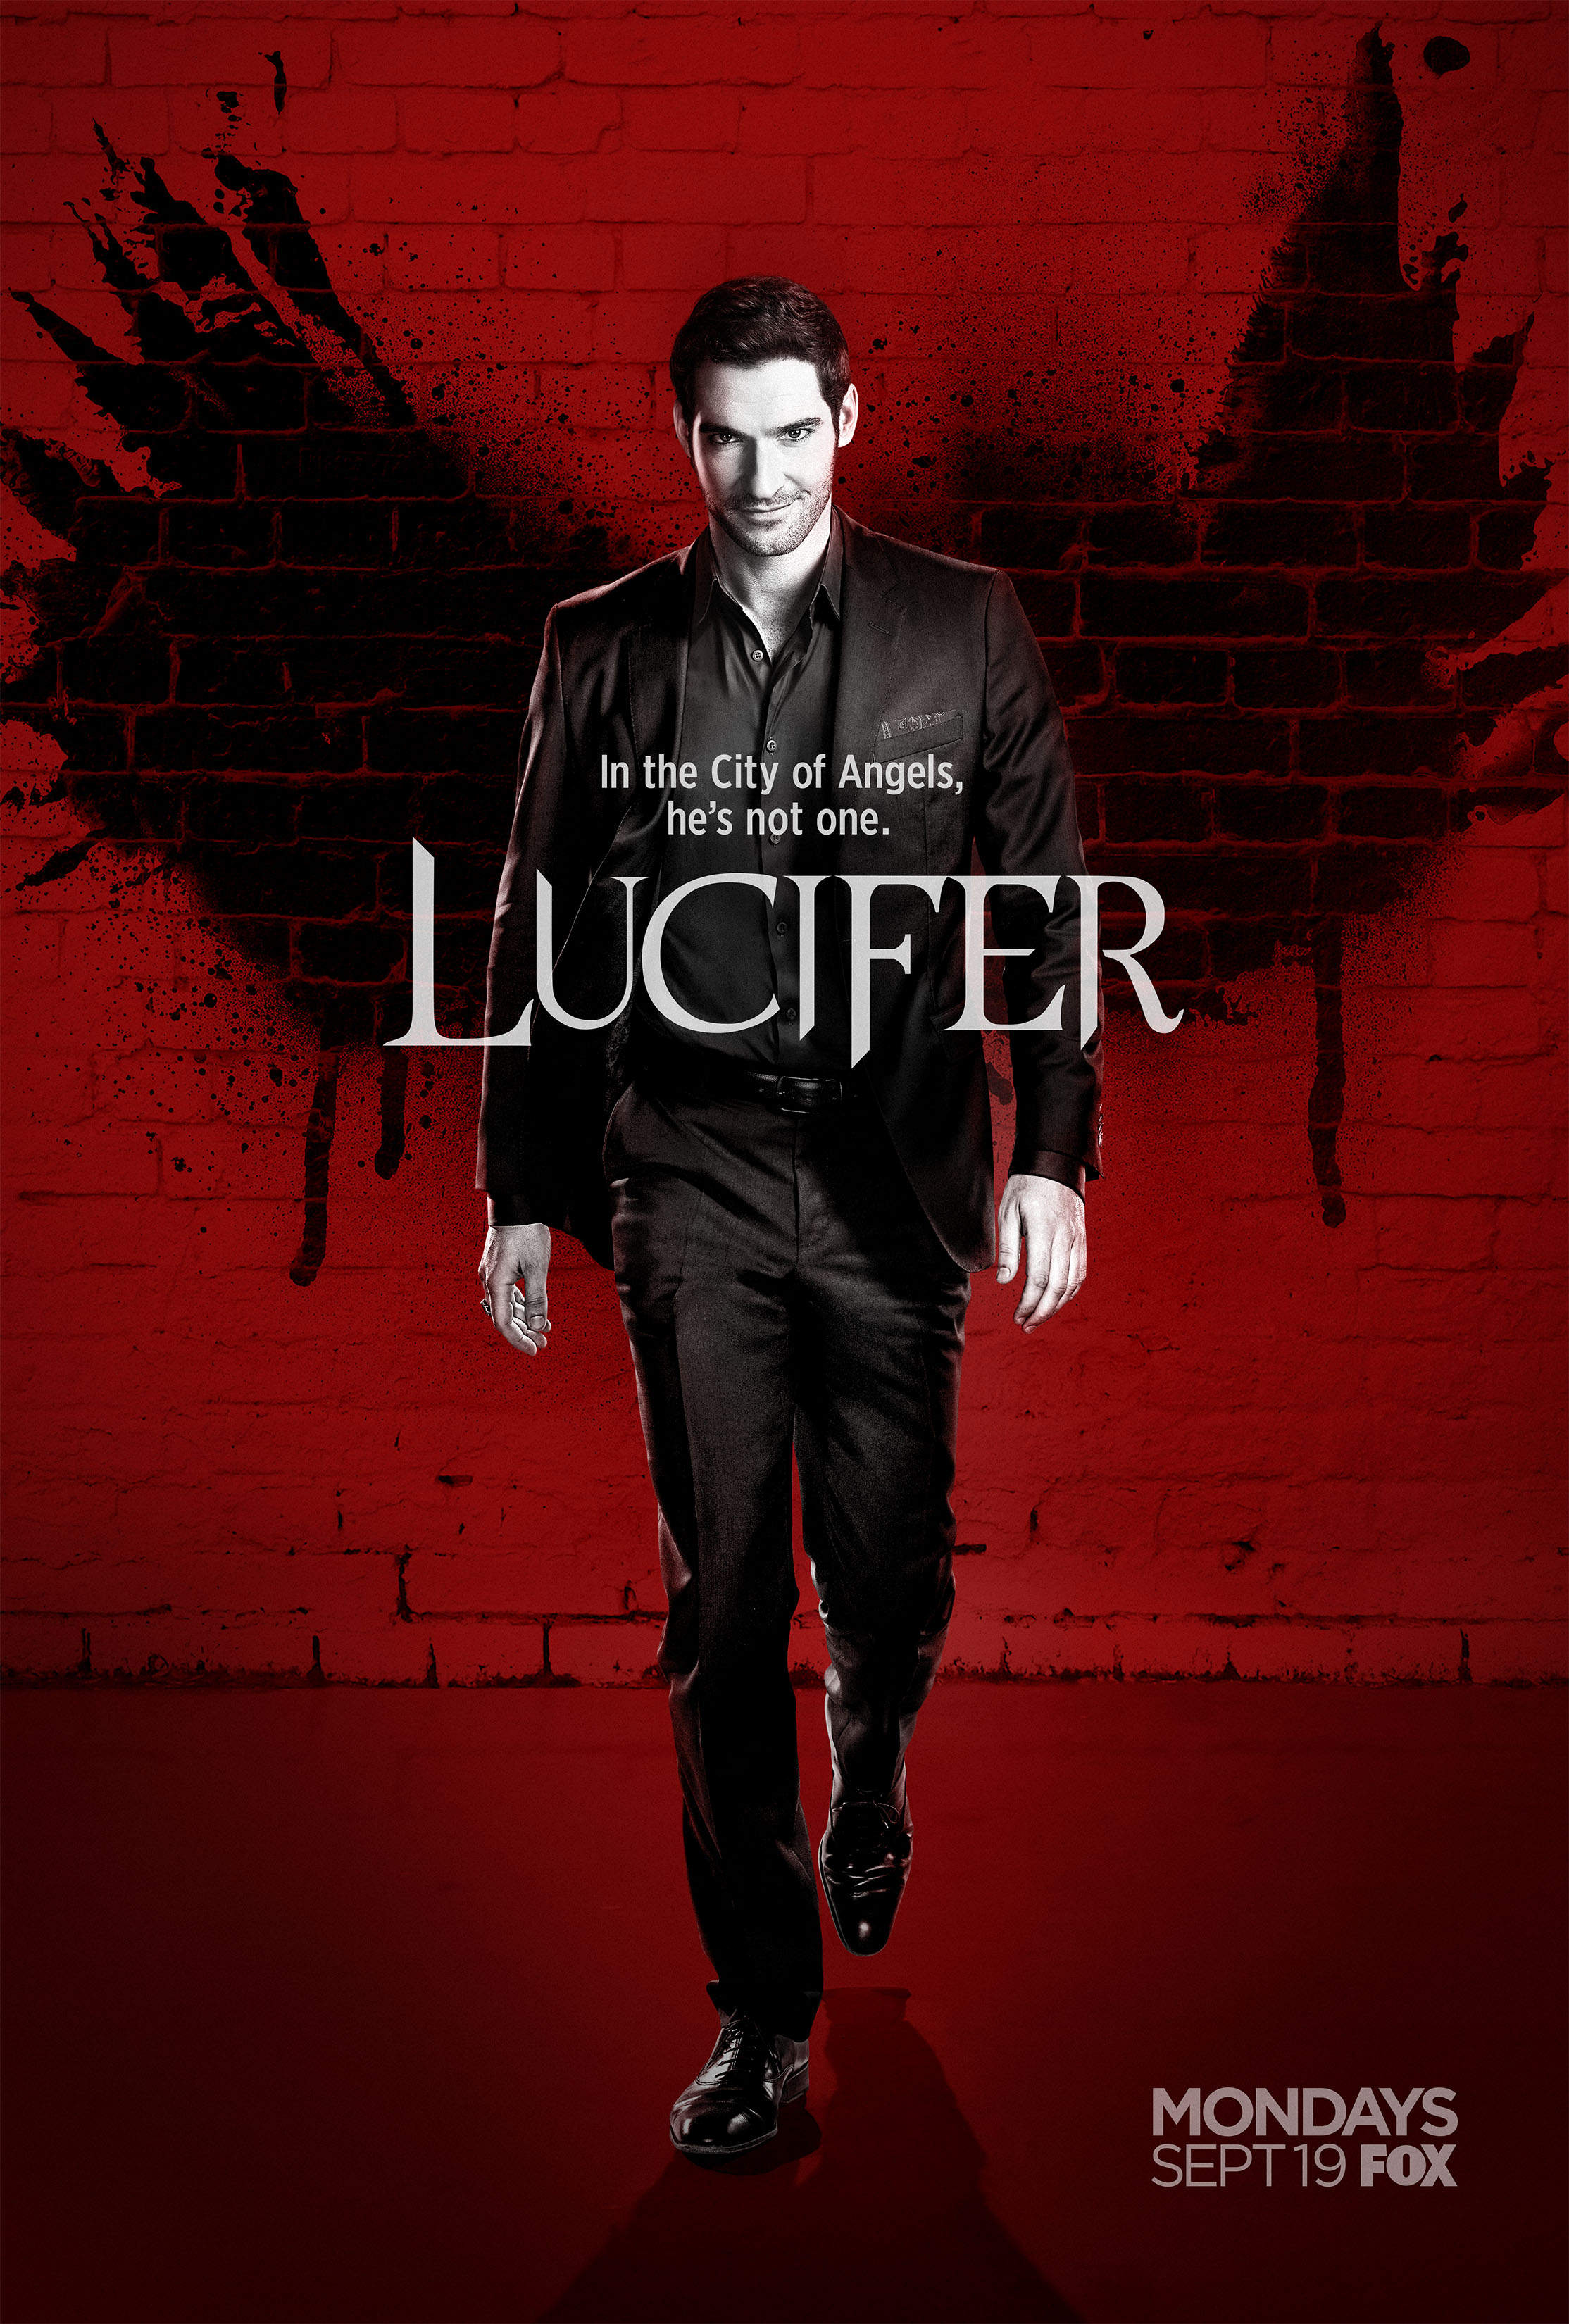 lucifer-s1-poster-f5-193907